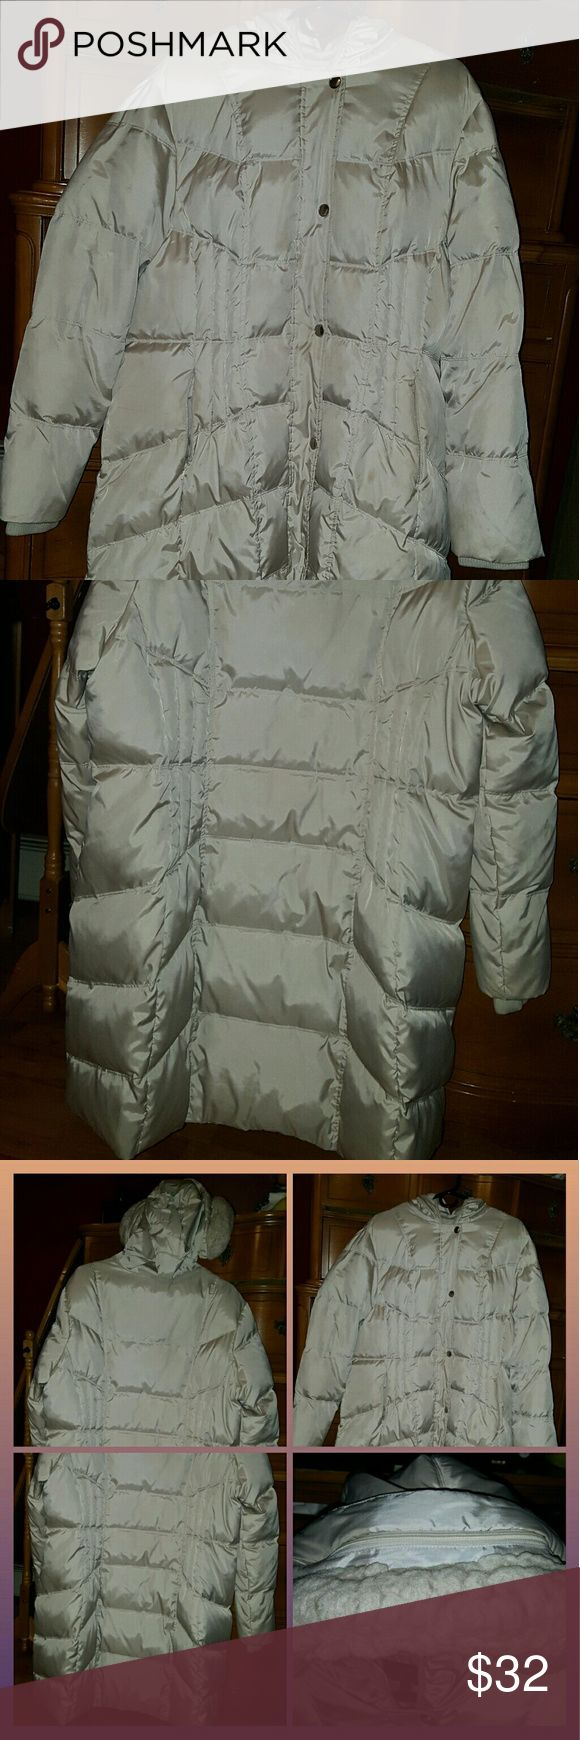 Ladies preowned long winter puffer coat Preowned ladies long winter coat hangs below knees. Good condition no rips, stains or smells. Beige color size xl/ 1x. Very warm and snuggly. Apt. 9 Jackets & Coats Puffers